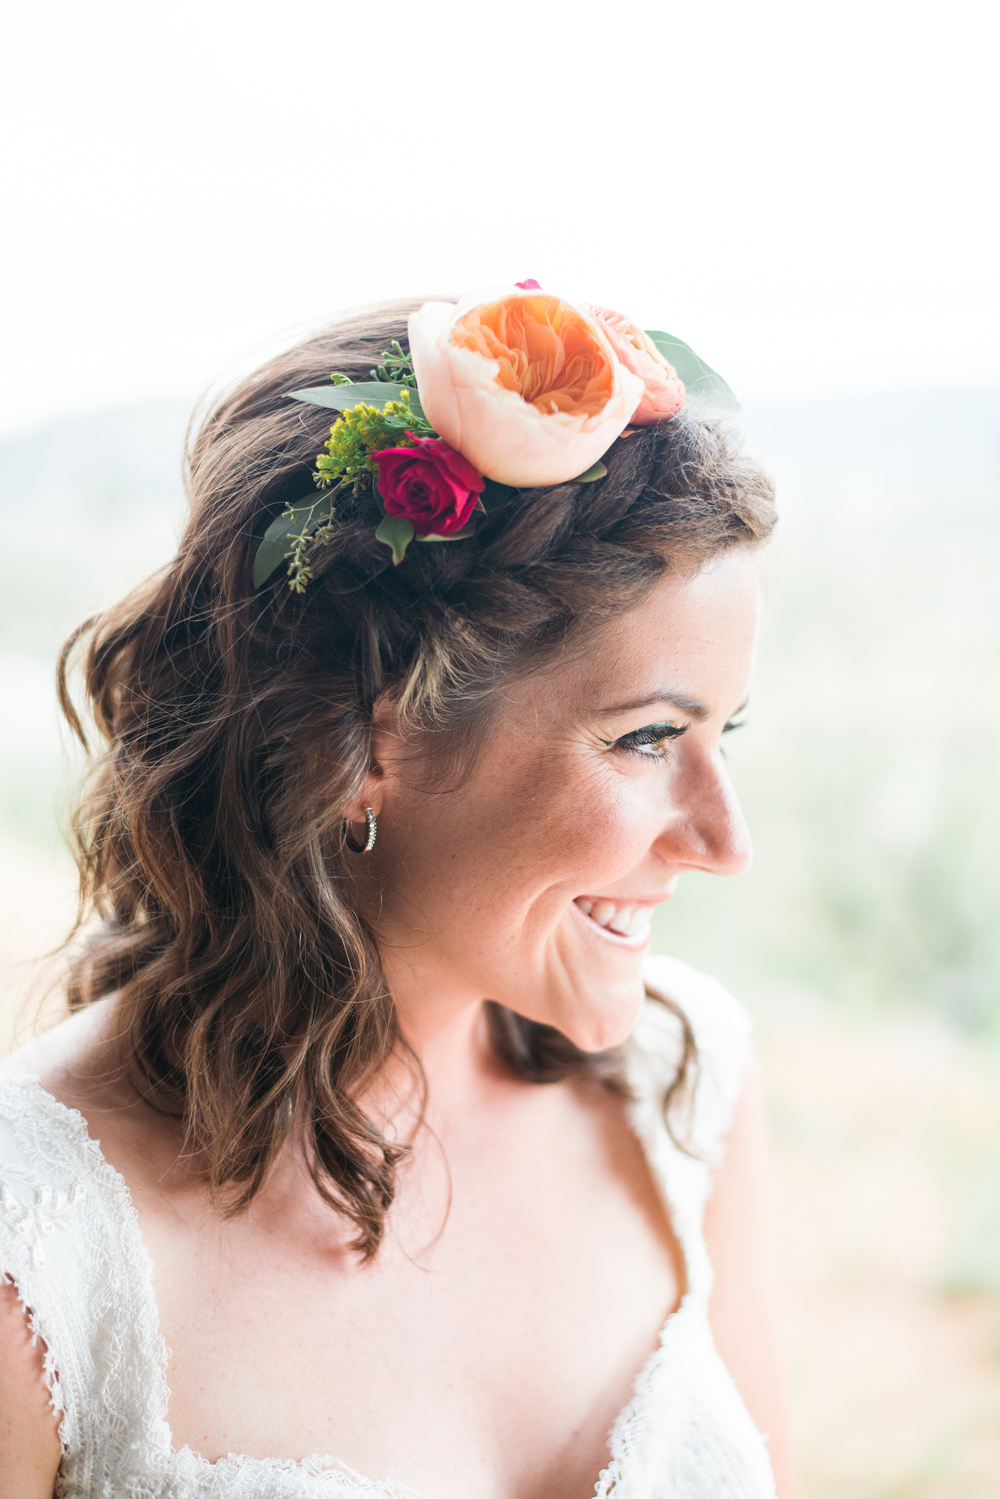 If you are not afraid to wear a larger and more lush flower on your wedding day, this can add to your beauty!